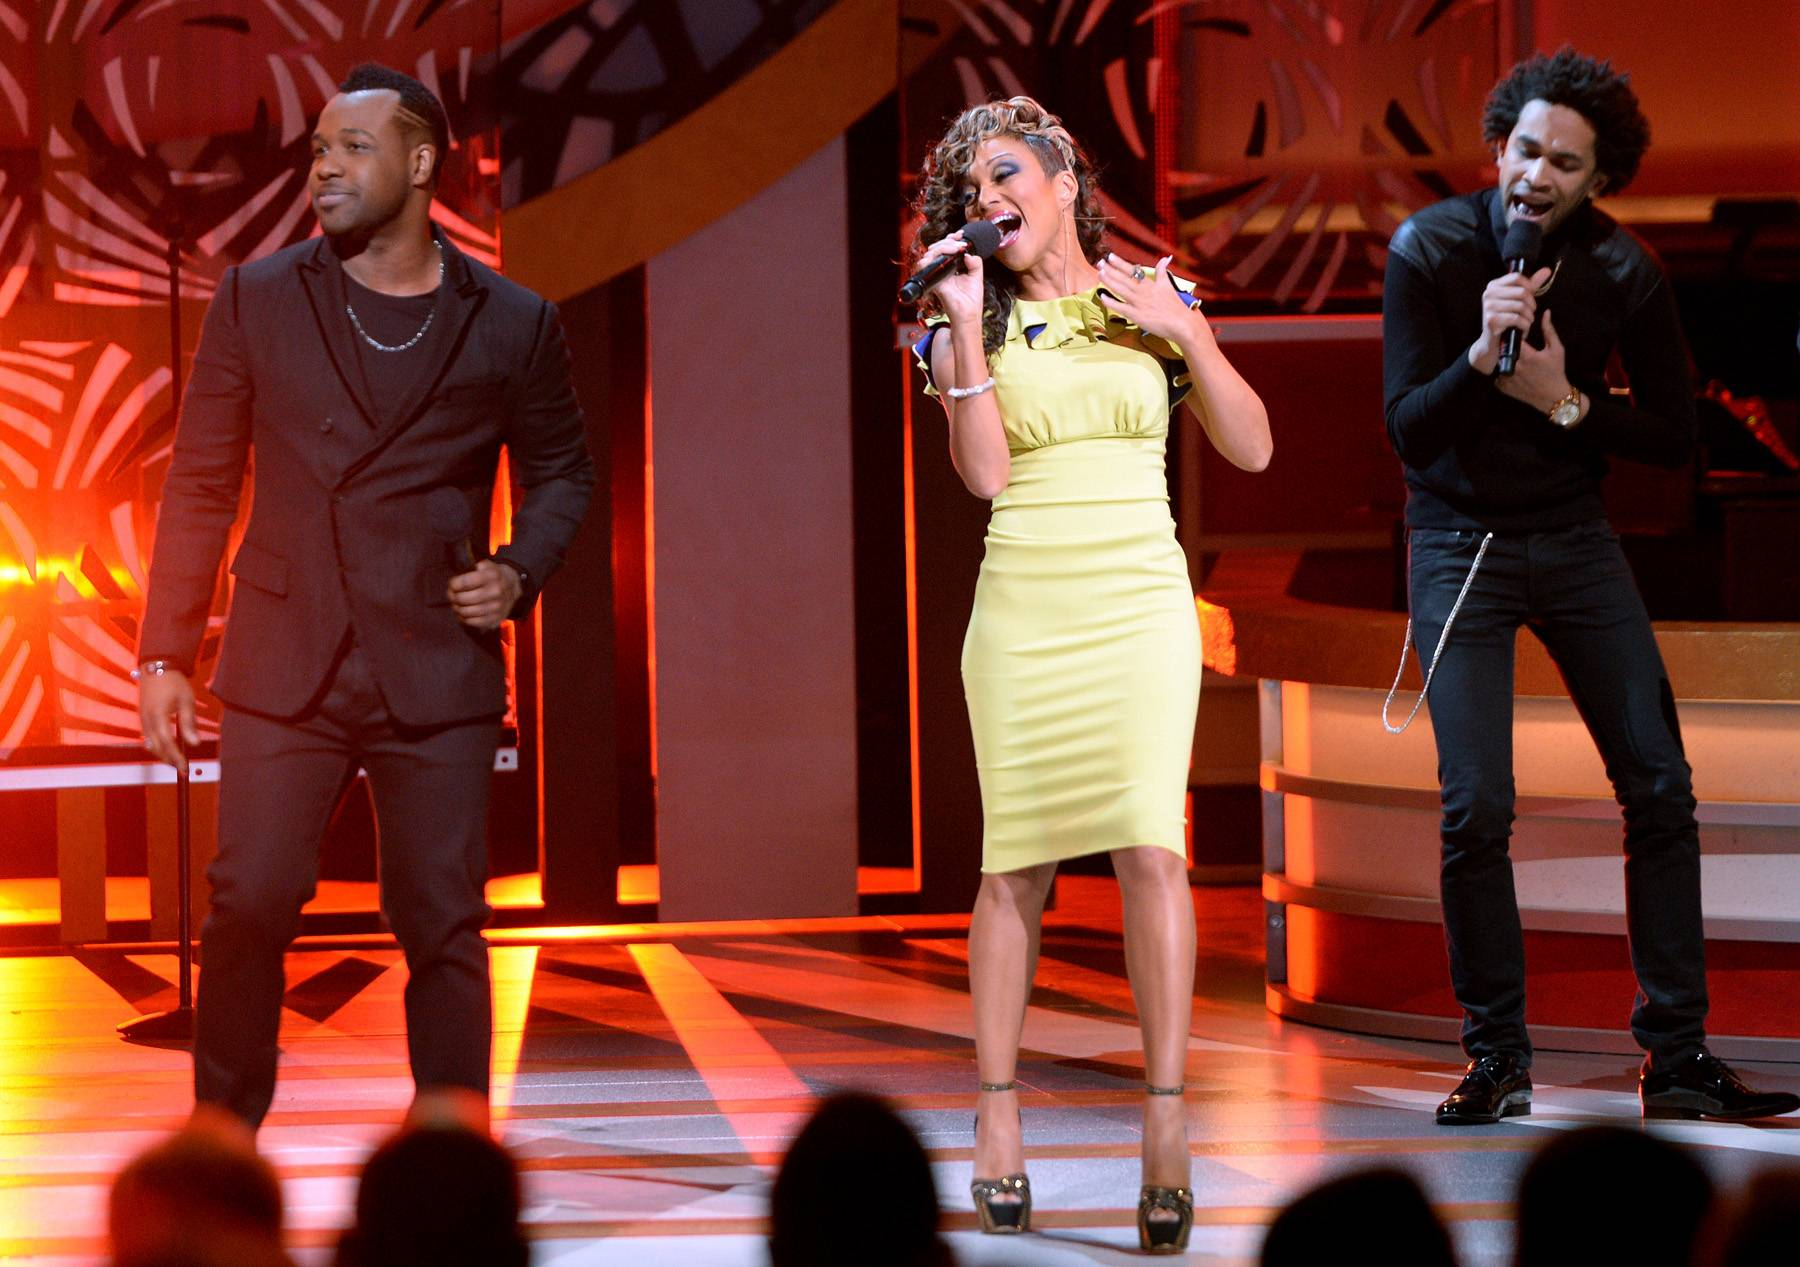 """The R&B Diva Featuring Vashawn Mitchell - Chanté Moore soared as she belted a clear-toned rendition of """"Jesus, I Want You"""" and later assisted Vashawn Mitchell in a electrifying performance of """"Chasing After You.""""(Photo: Jason Kempin/Getty Images for BET)"""